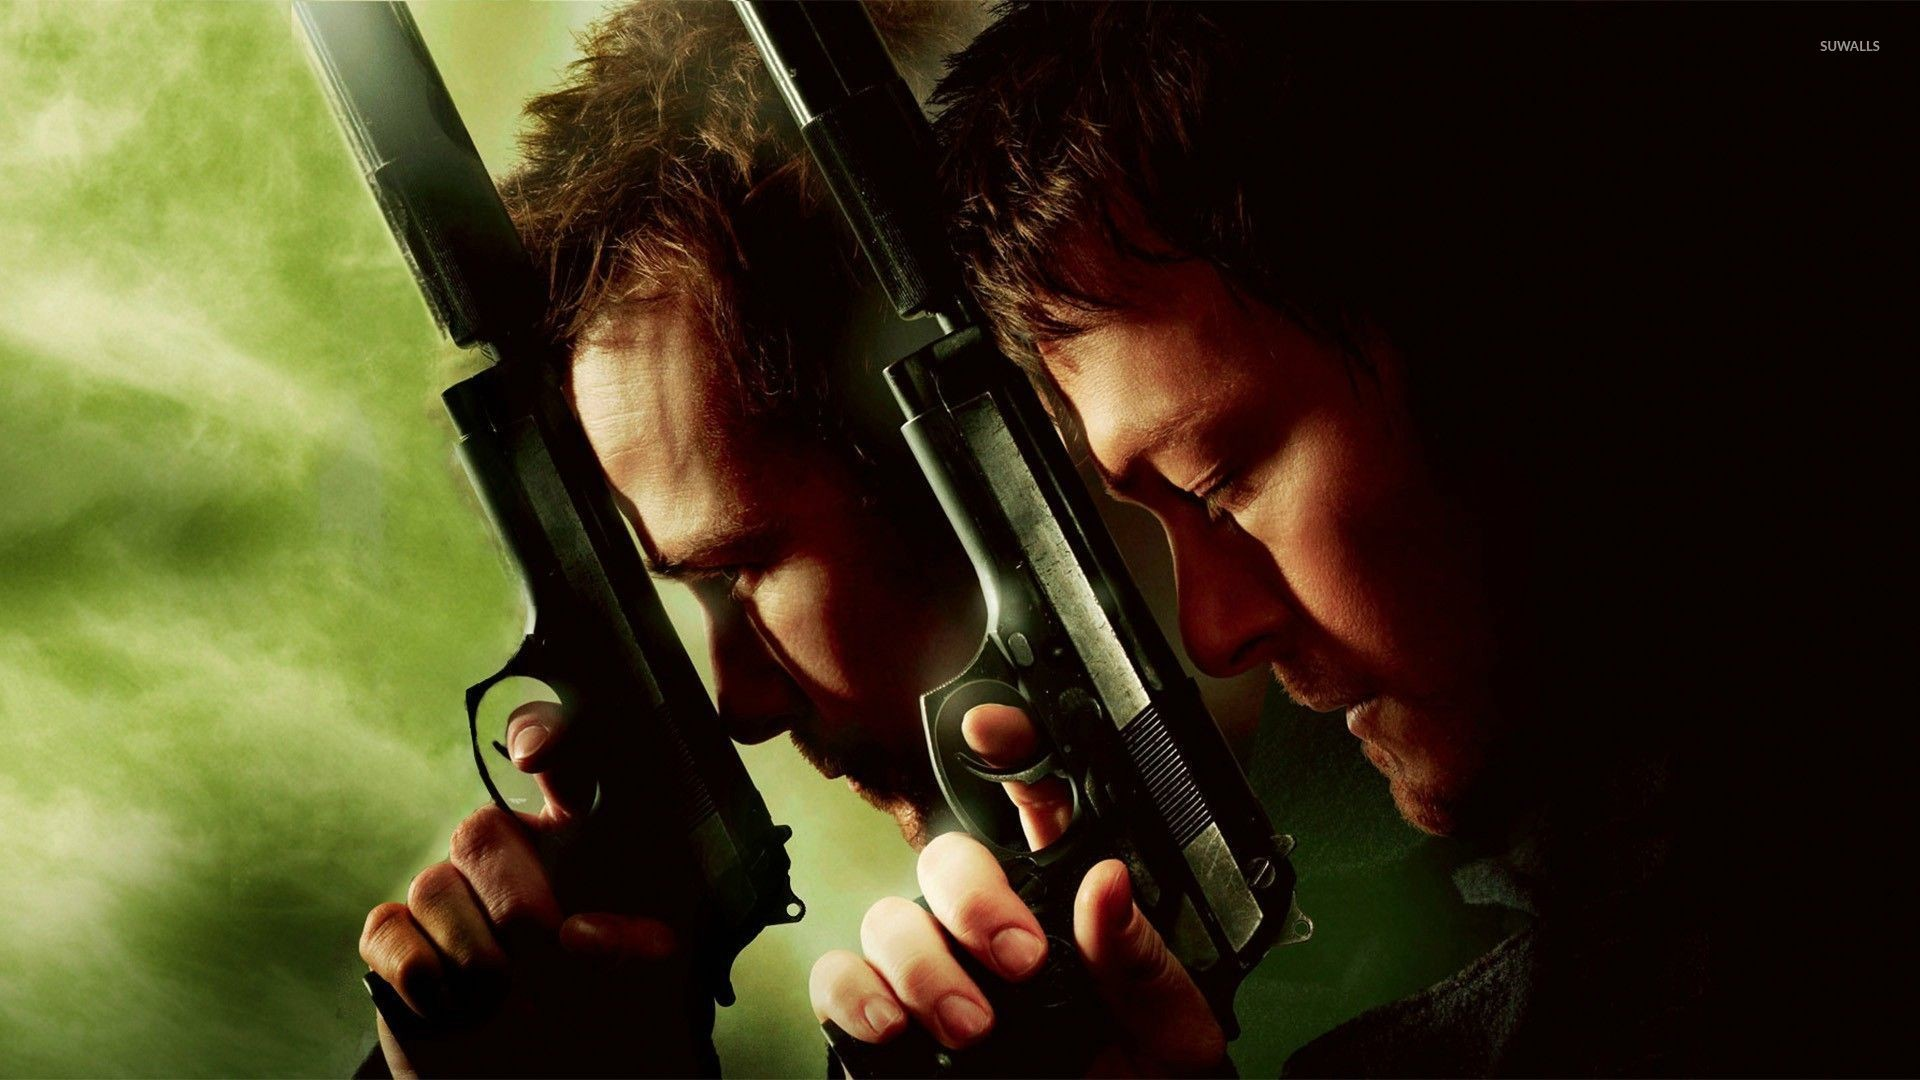 Photo of Best Boondock Saints quotes: What are the most memorable lines from the movie?